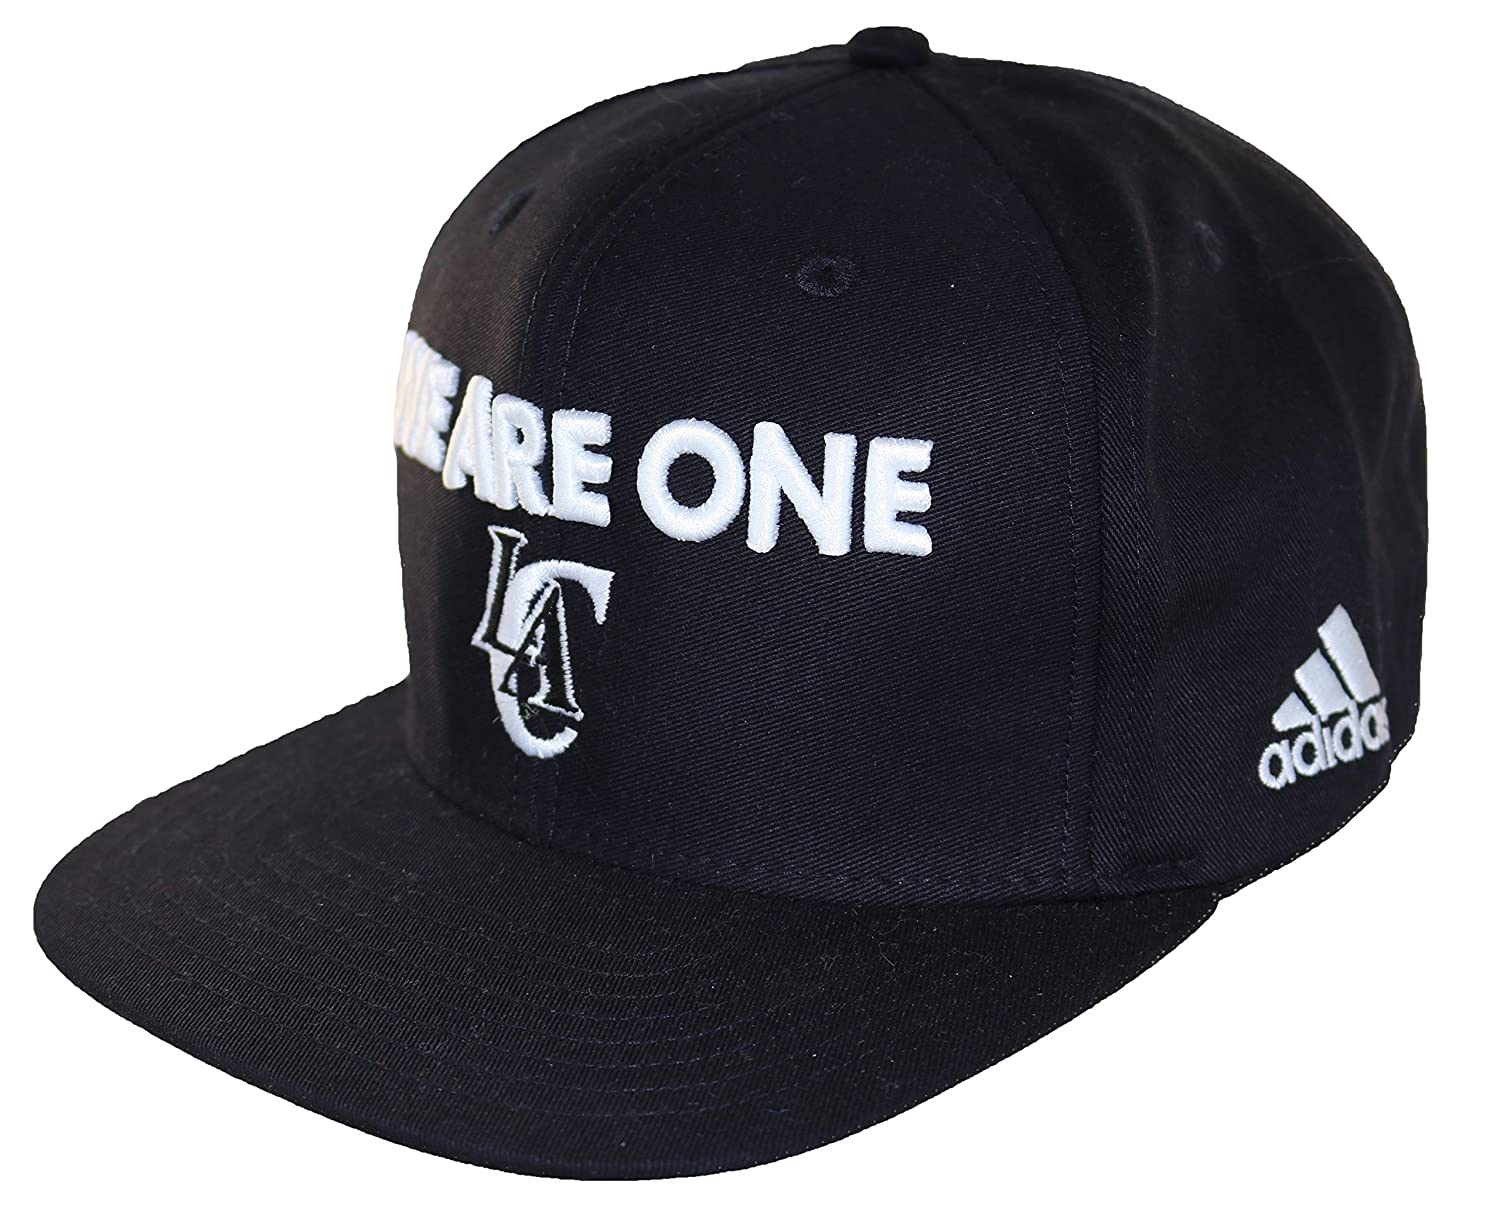 Adidas Mens We Are One Los Angeles Clippers Snapback Cap One Size Black White